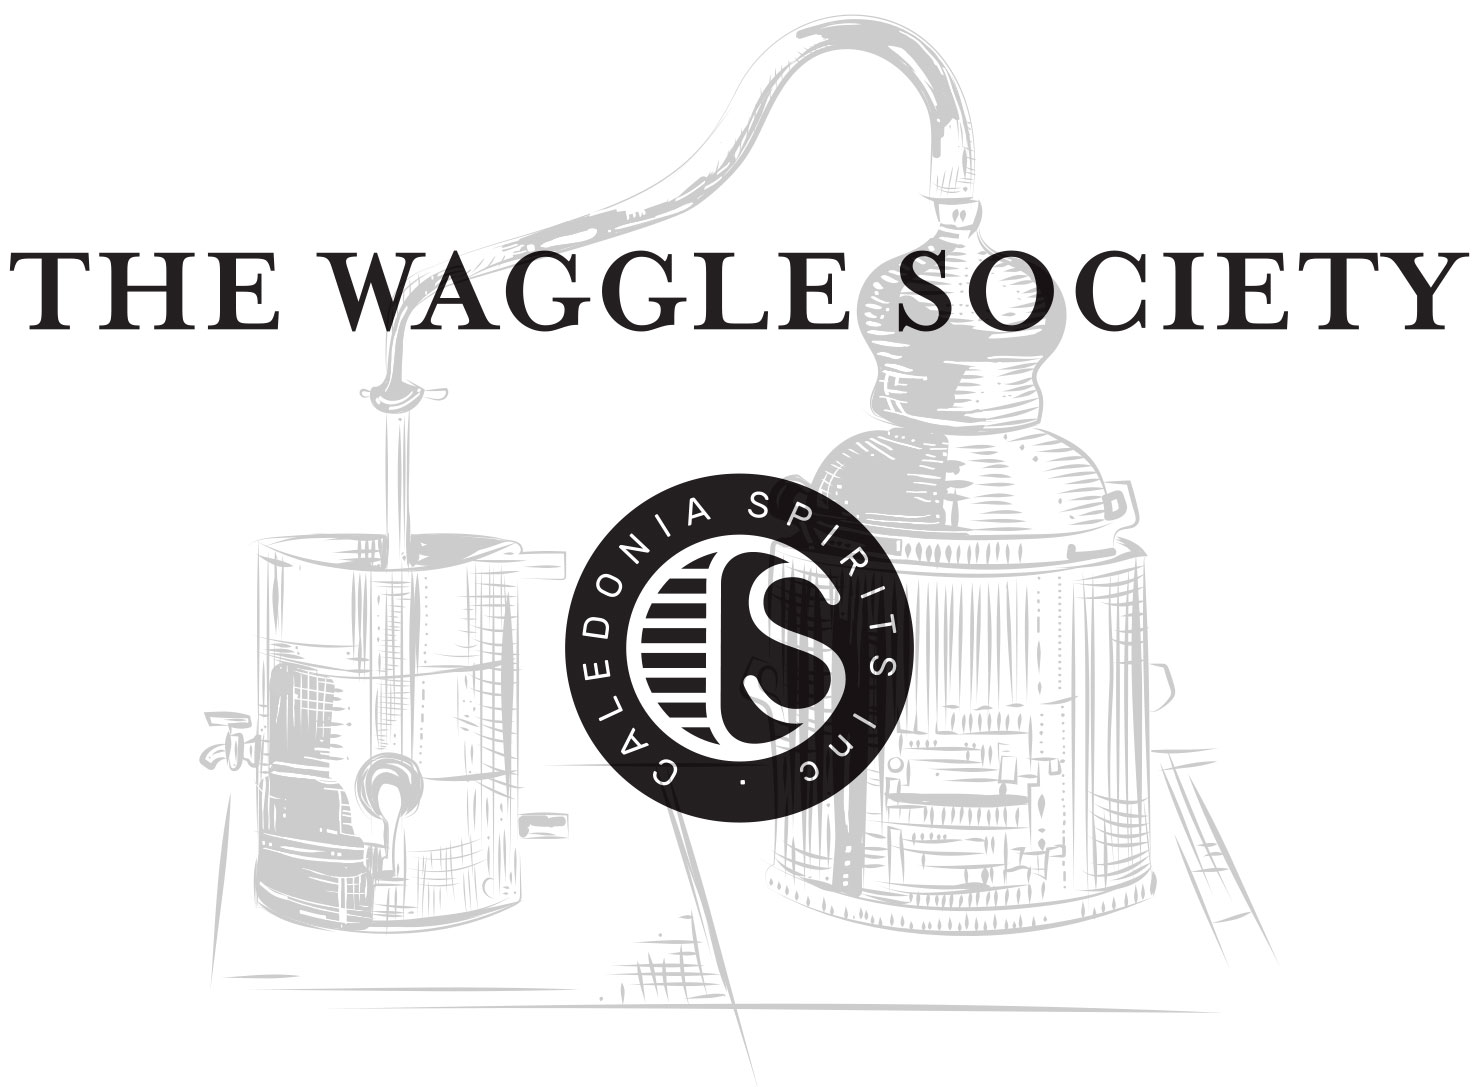 The Waggle Society